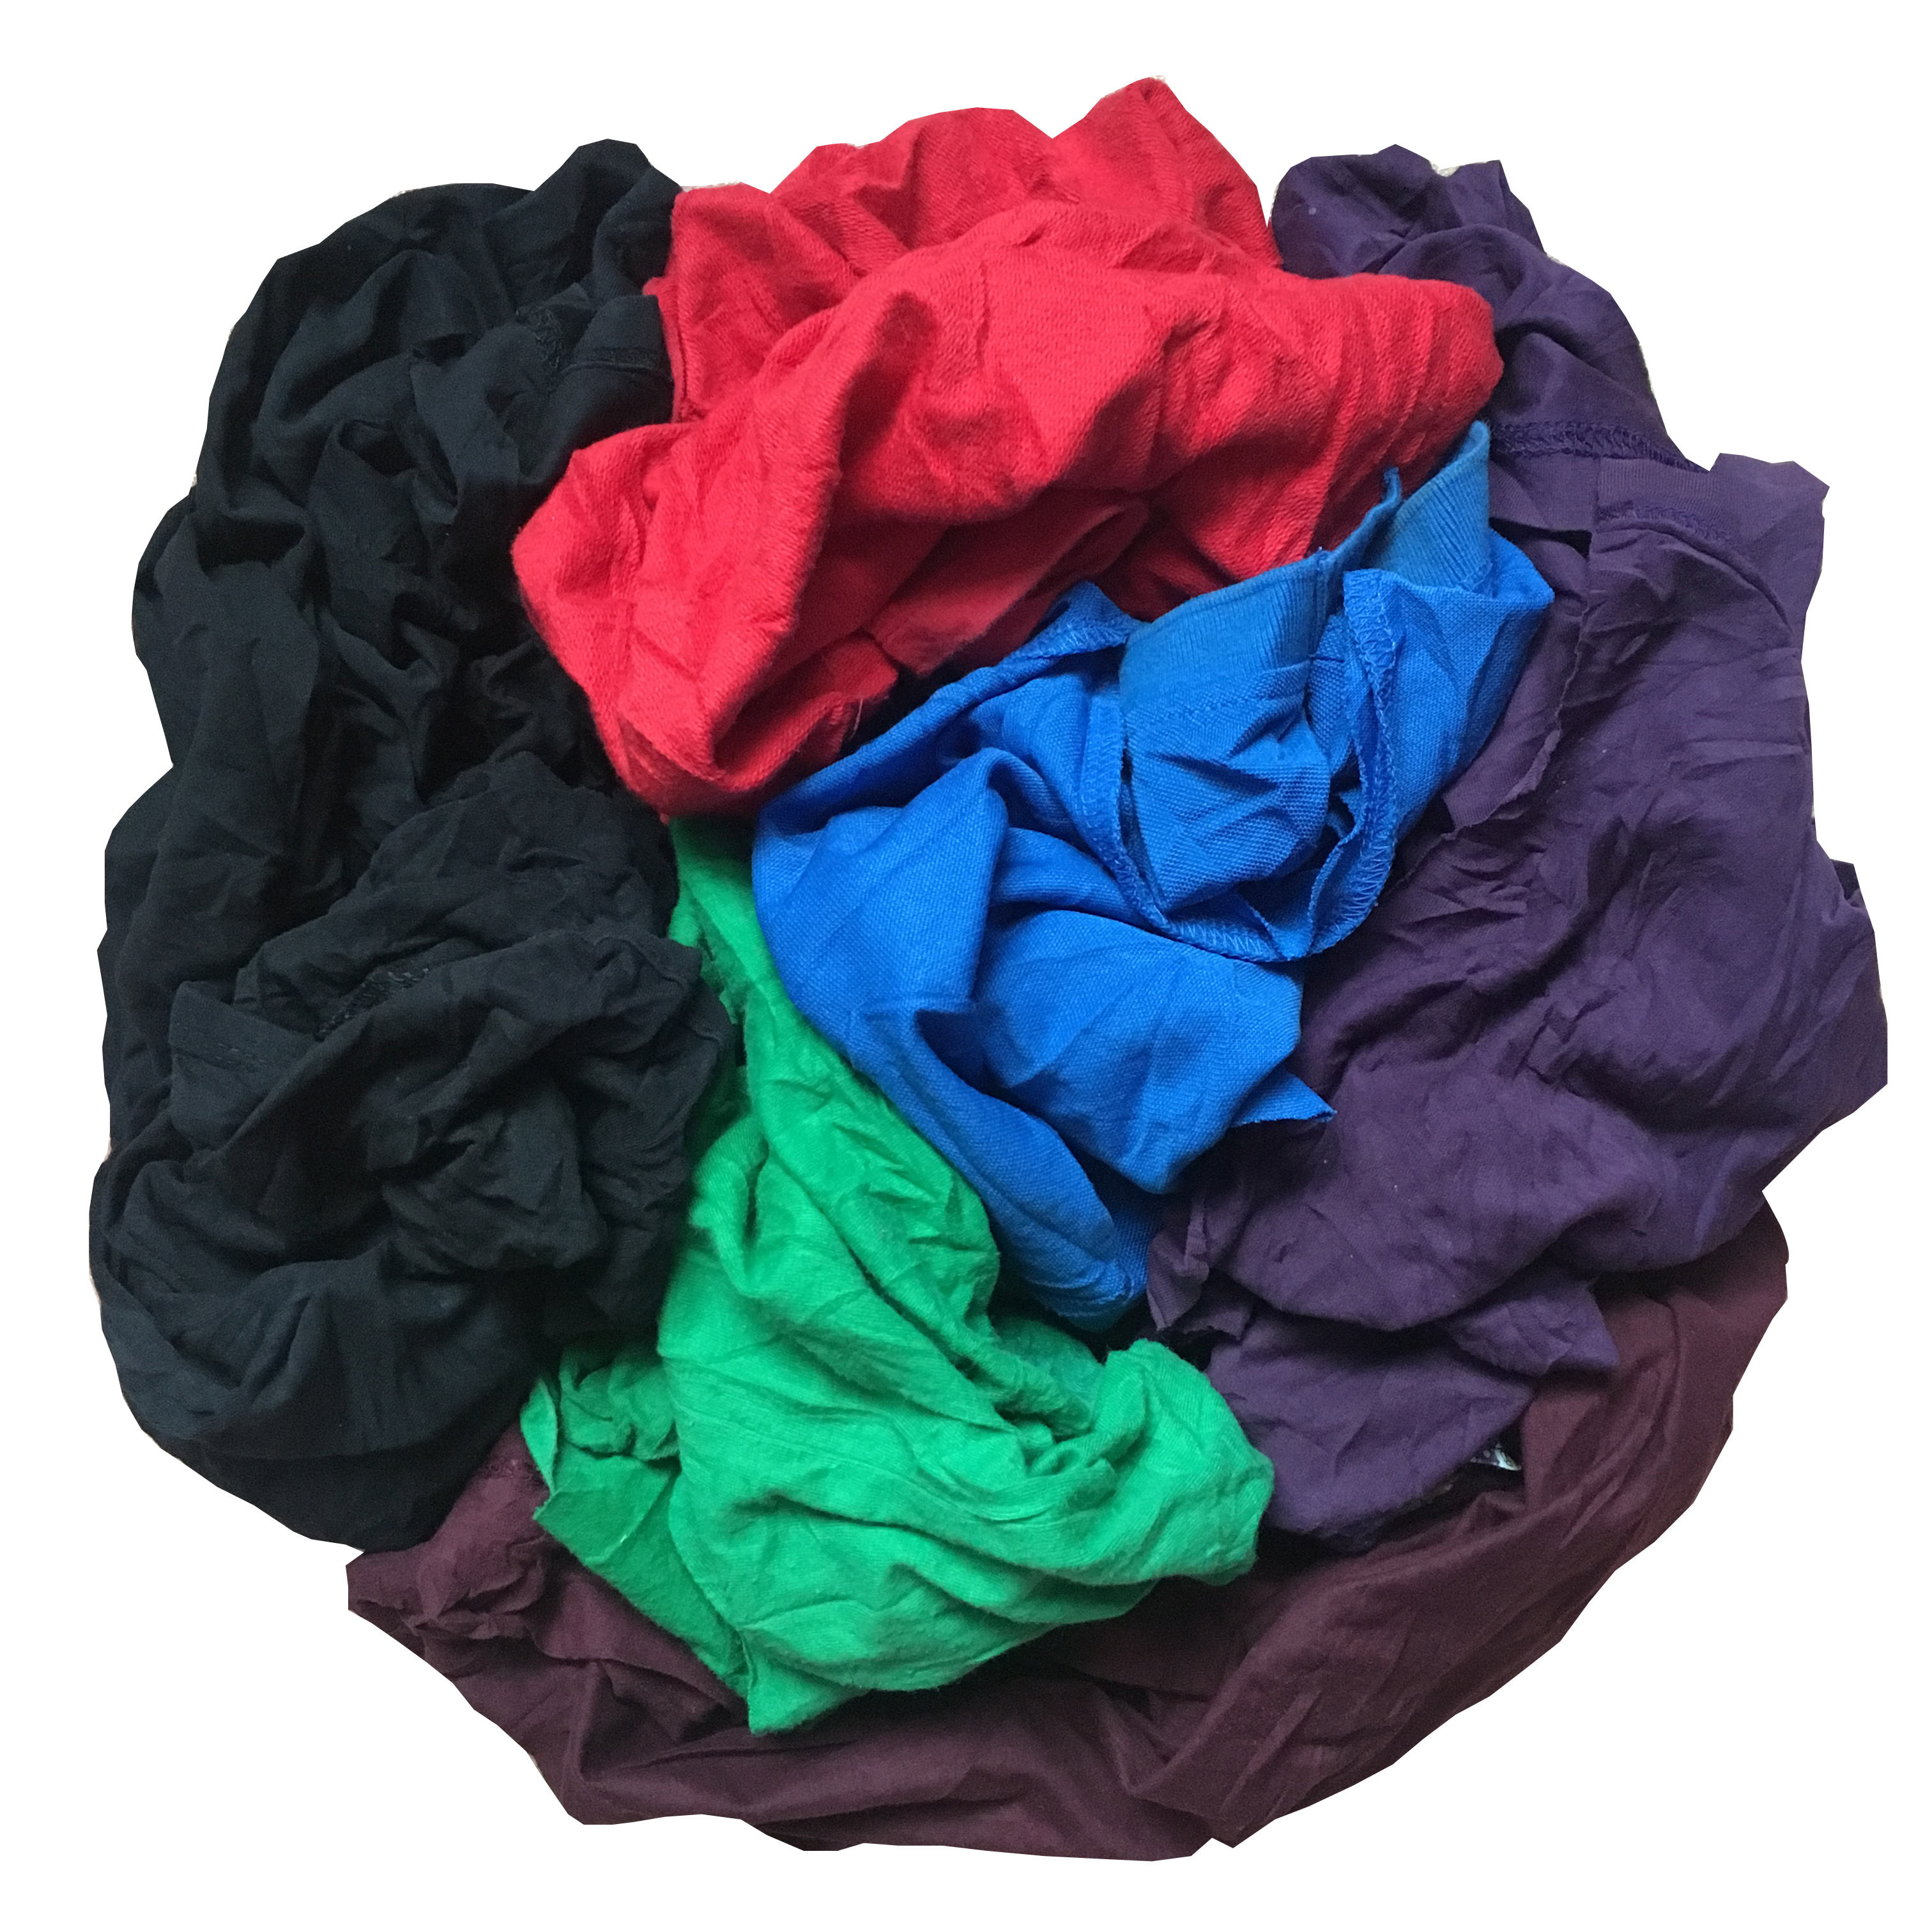 100% cotton dark color t shirt wiping cloth for industry wiping rags